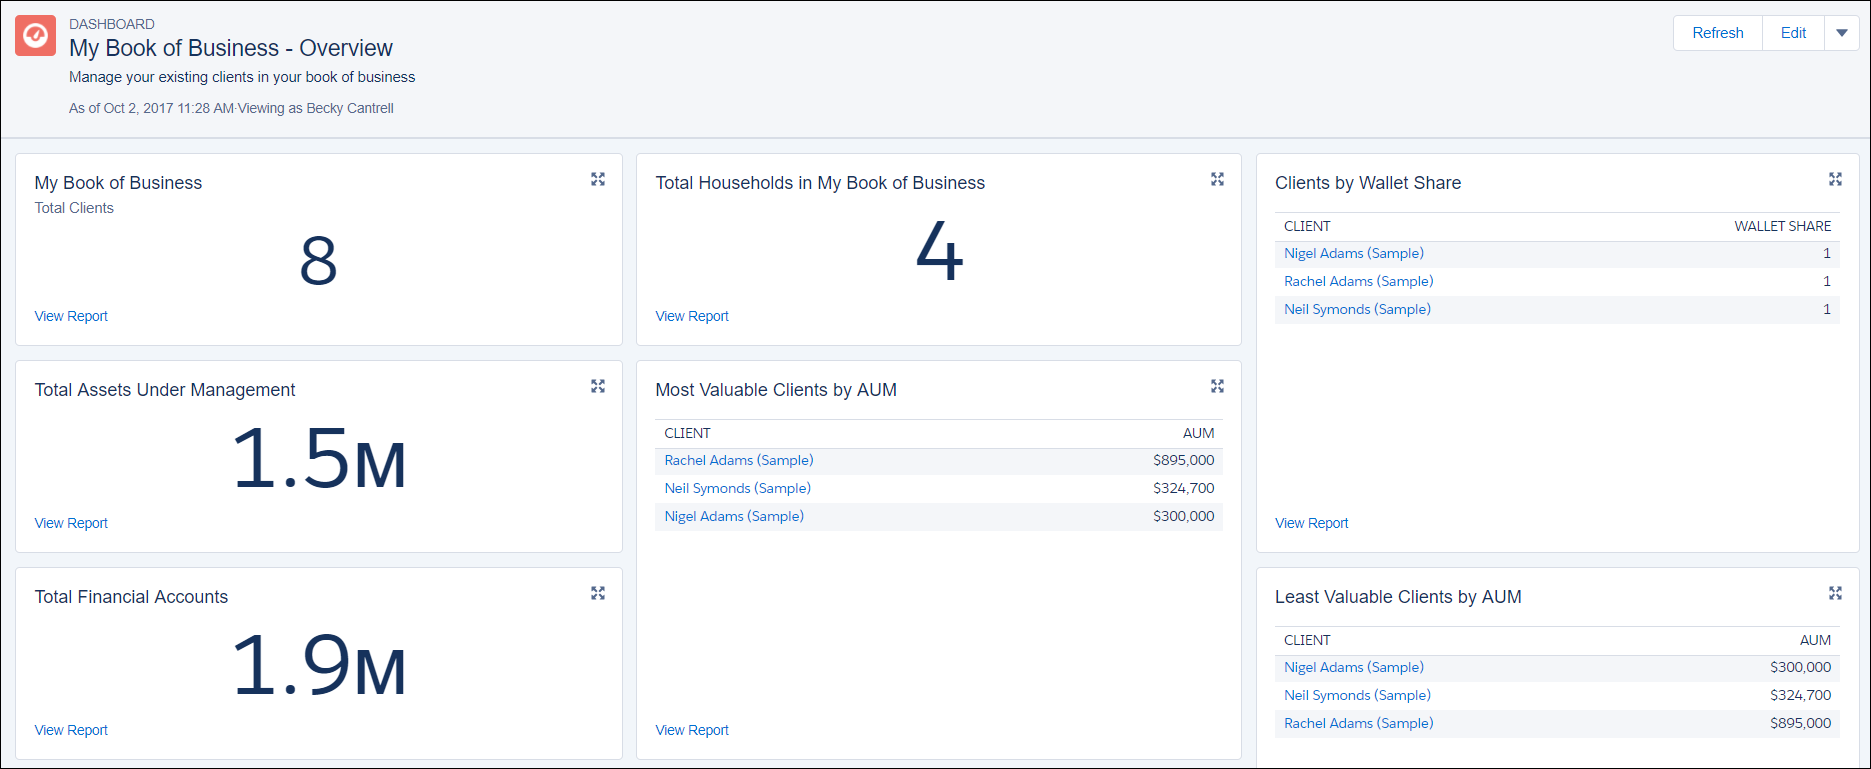 Screen shot showing the My Book of Business - Overview dashboard. Cards in the first column display Total Clients, Total Assets Under Management, and Total Financial Accounts. Cards in the second column display Total Households and Most Valuable Clients by AUM. Cards in the third column display Clients by Wallet Share and Least Valuable Clients by AUM.